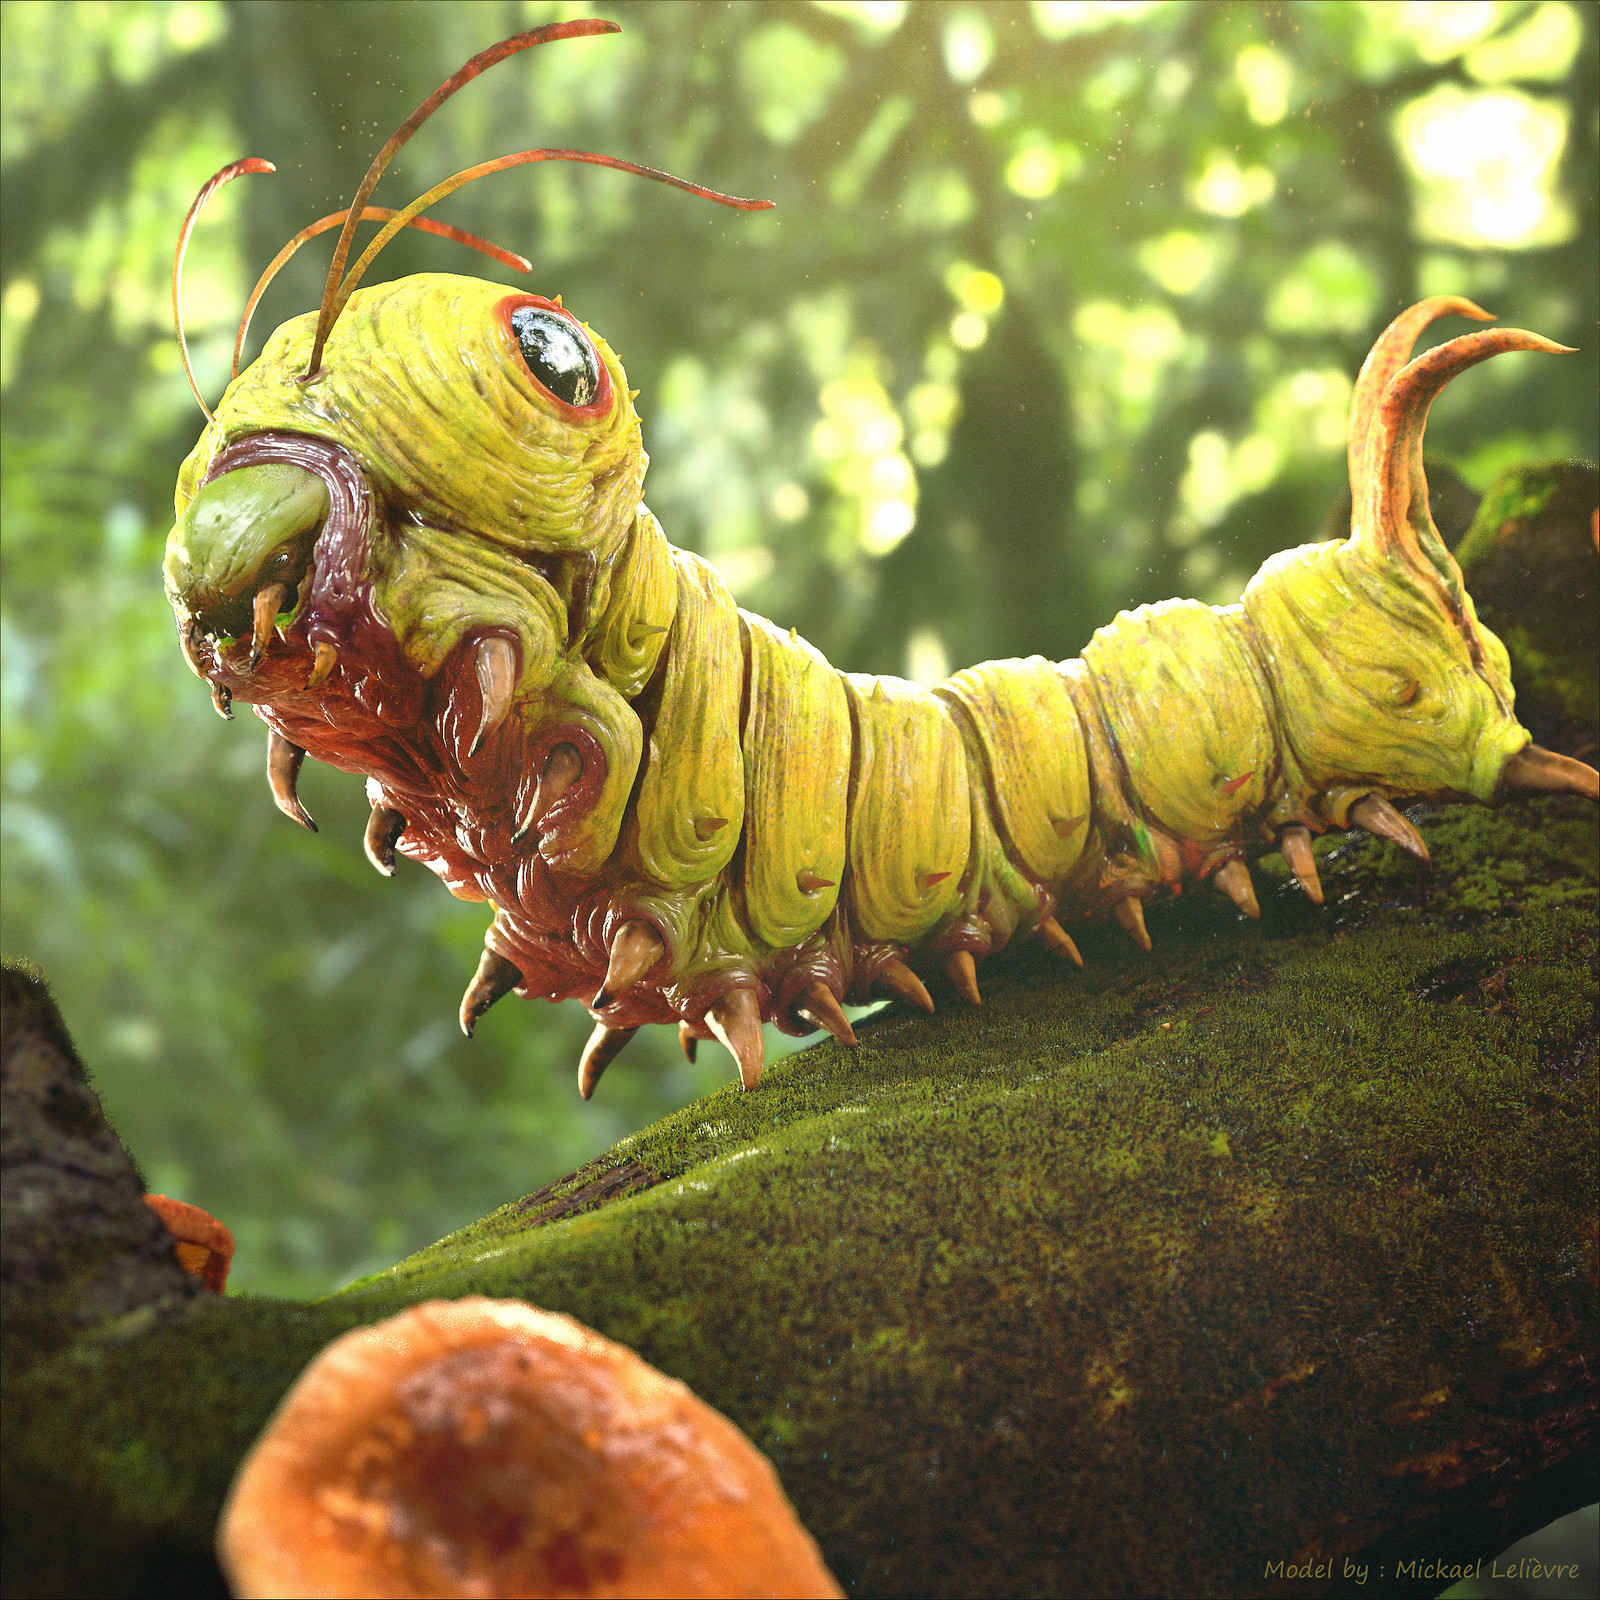 Pokemon #010 - Caterpie (model by : Mickael Lelièvre)